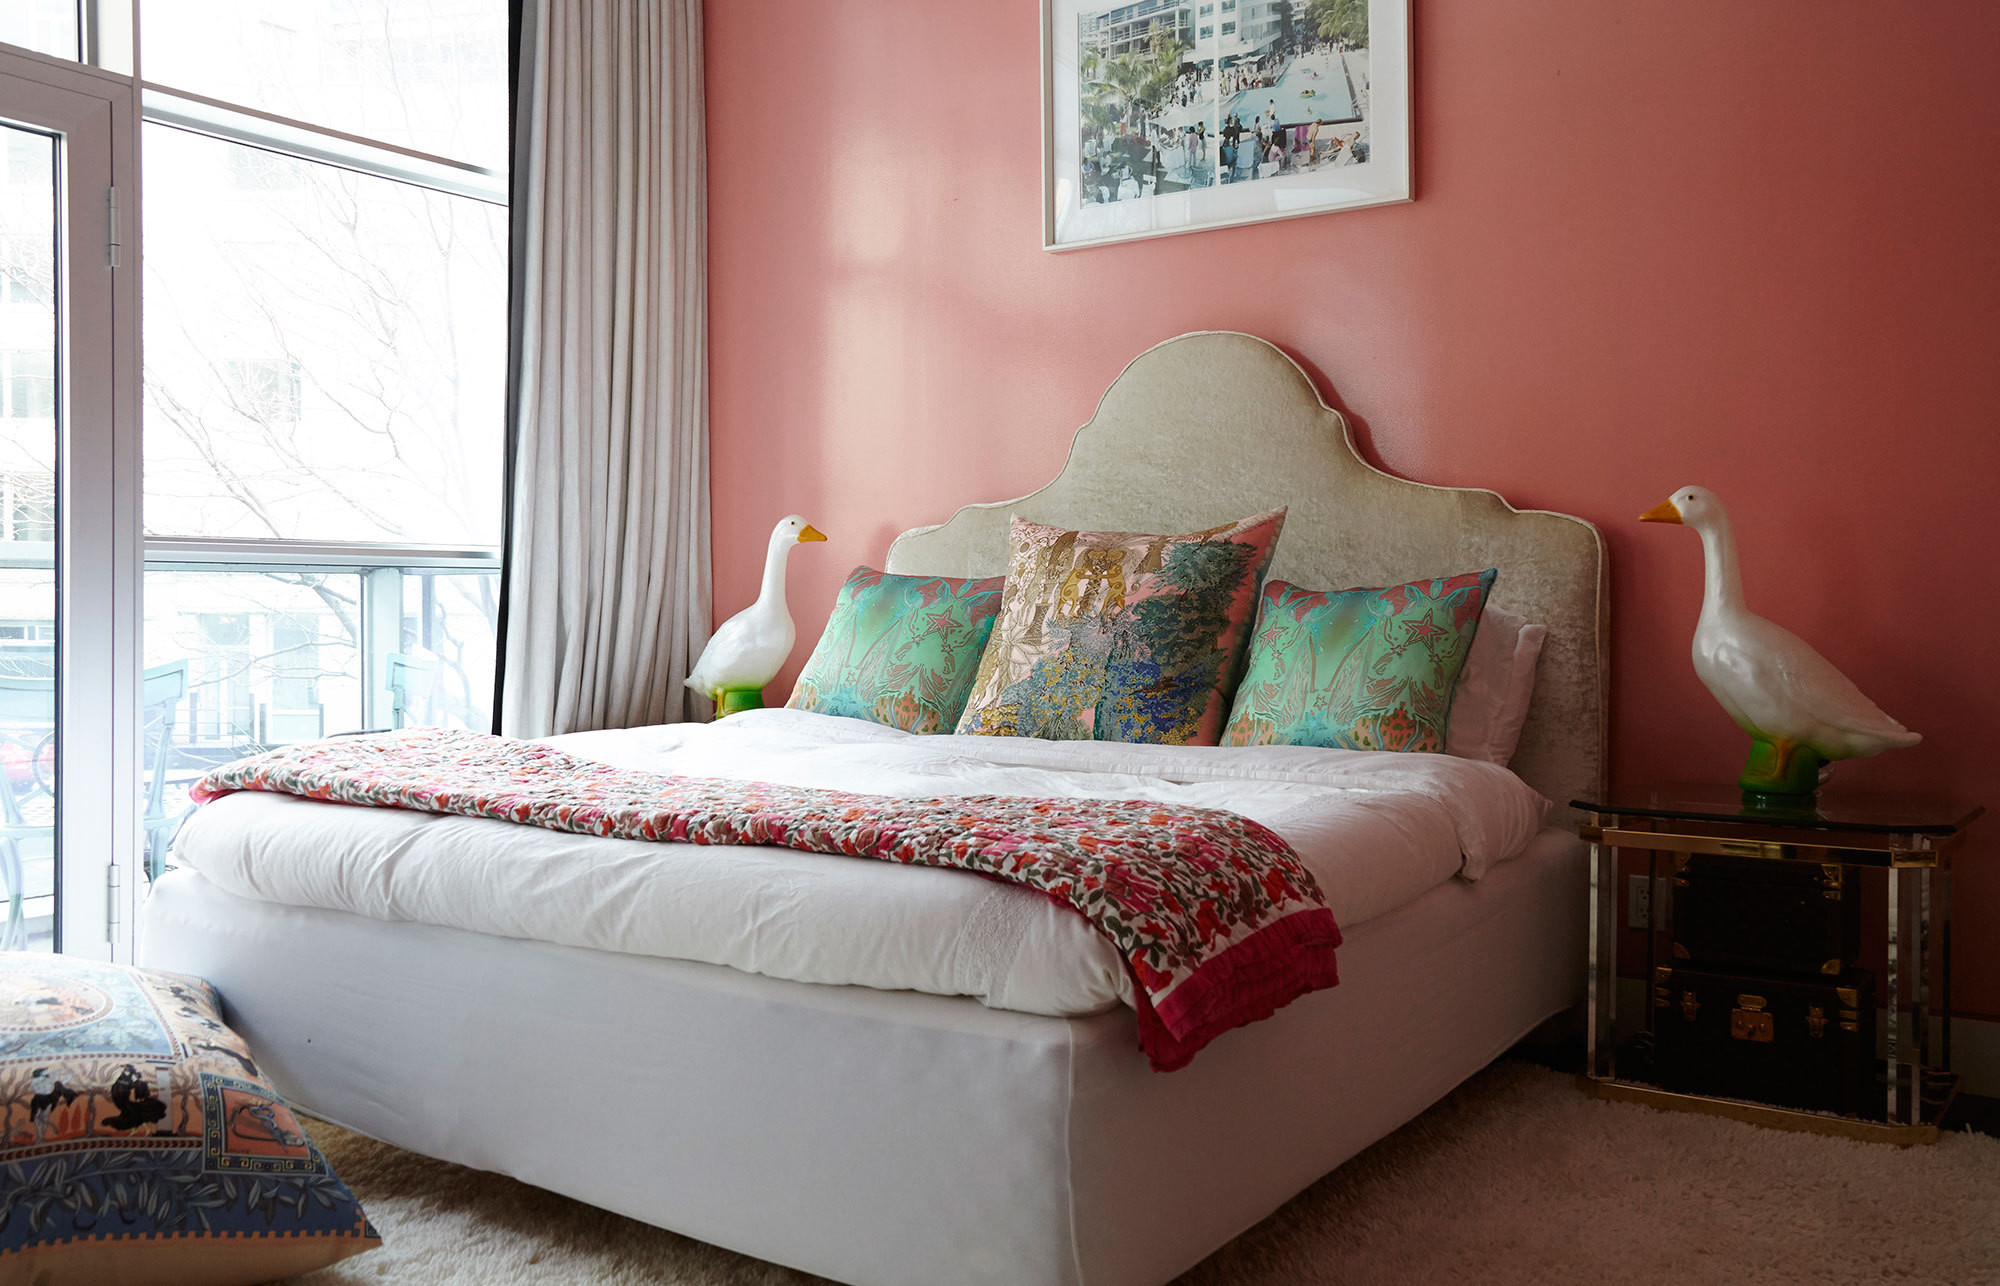 Fine Paints of Europe's Coral Rosecreates a cozy, boudoir feel in the master suite. The throw pillows are made from designer scarves, and the geese lamps are vintage.